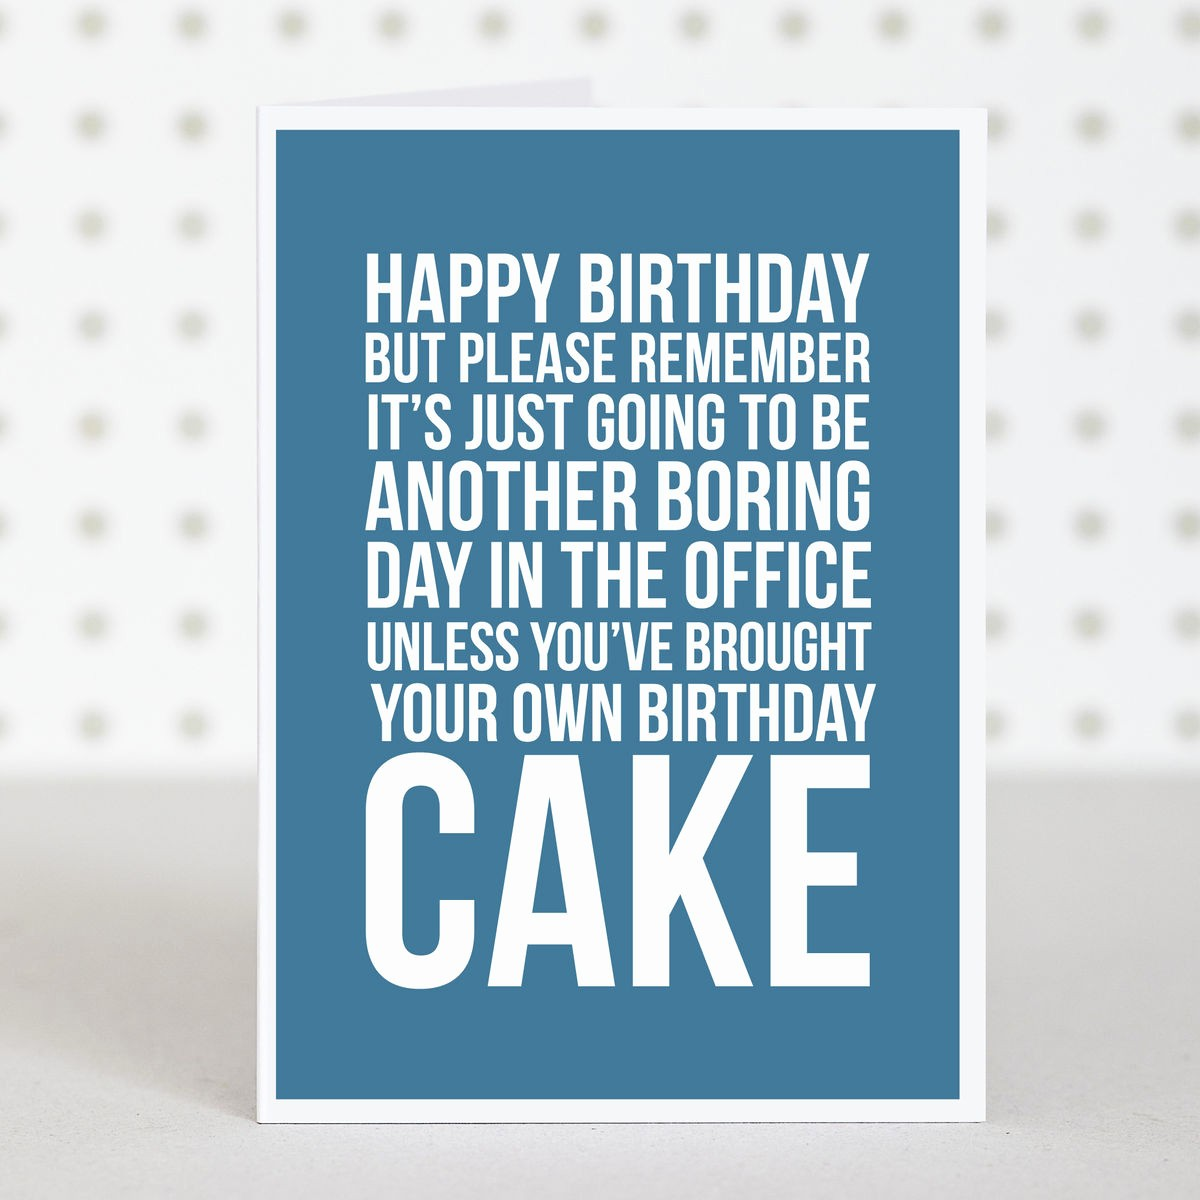 Happy Birthday From the Office Fresh the Fice Happy Birthday Quotes Quotesgram